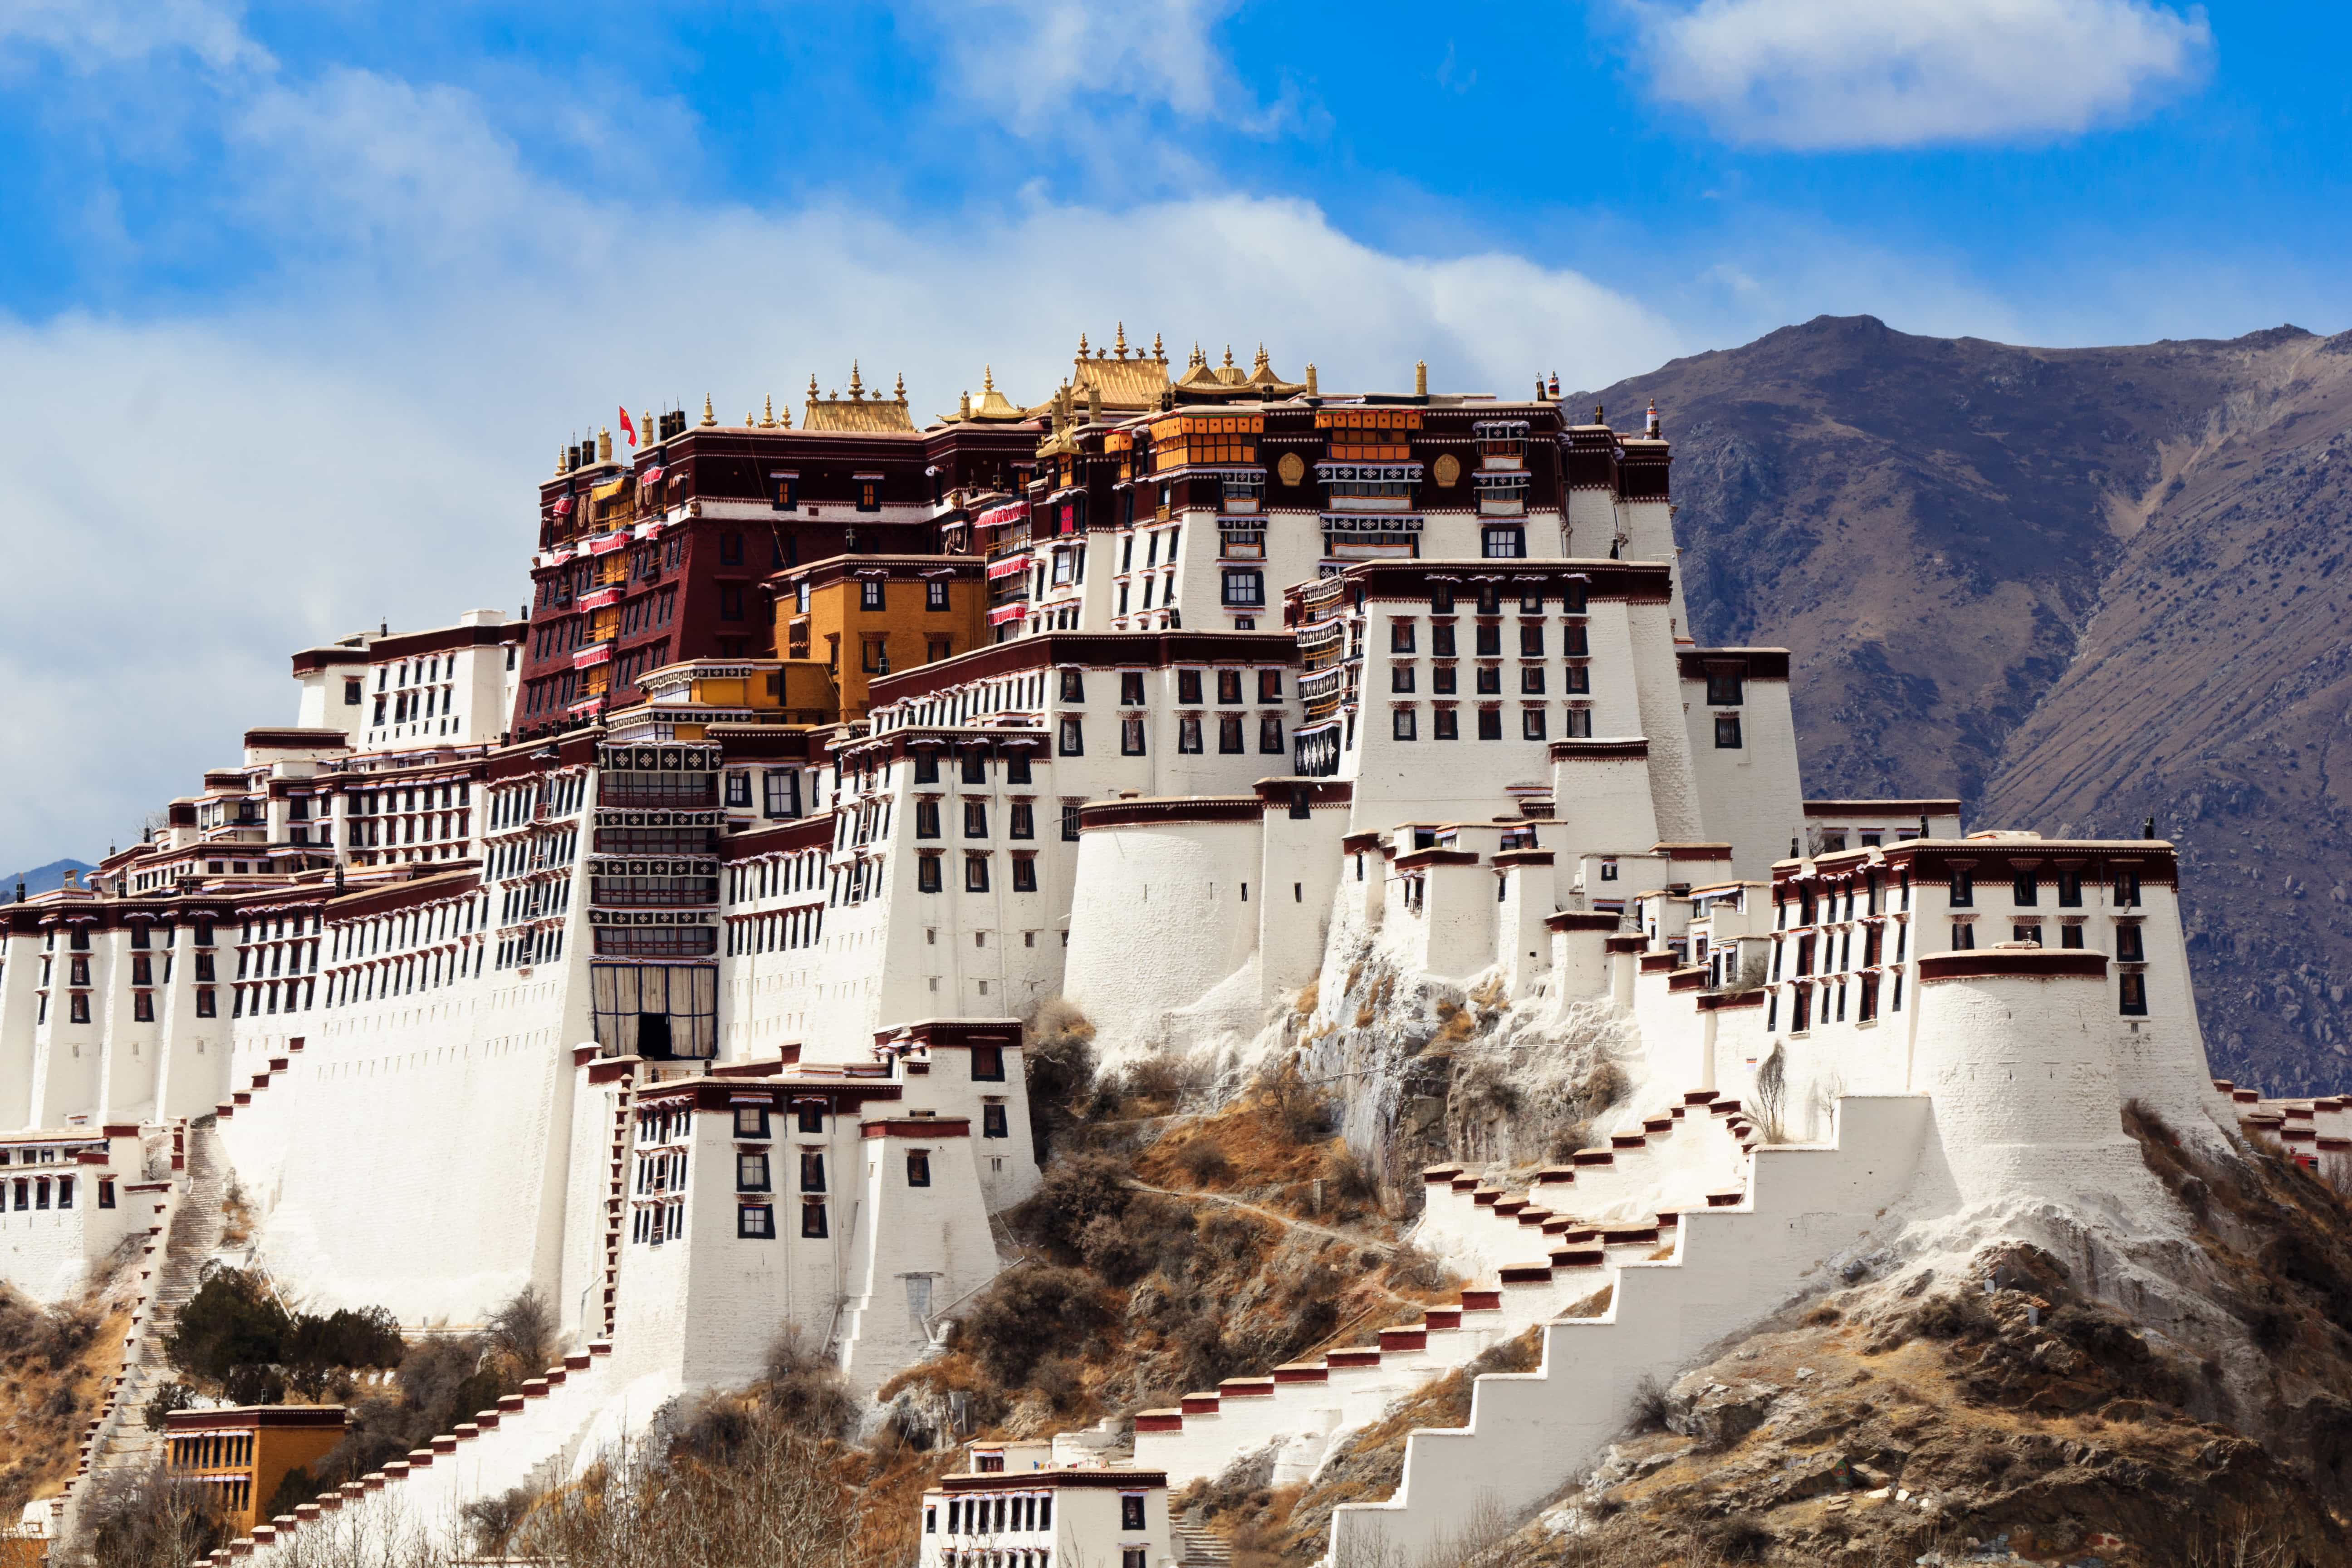 UNESCO World Heritage site Potala Palace in Lhasa